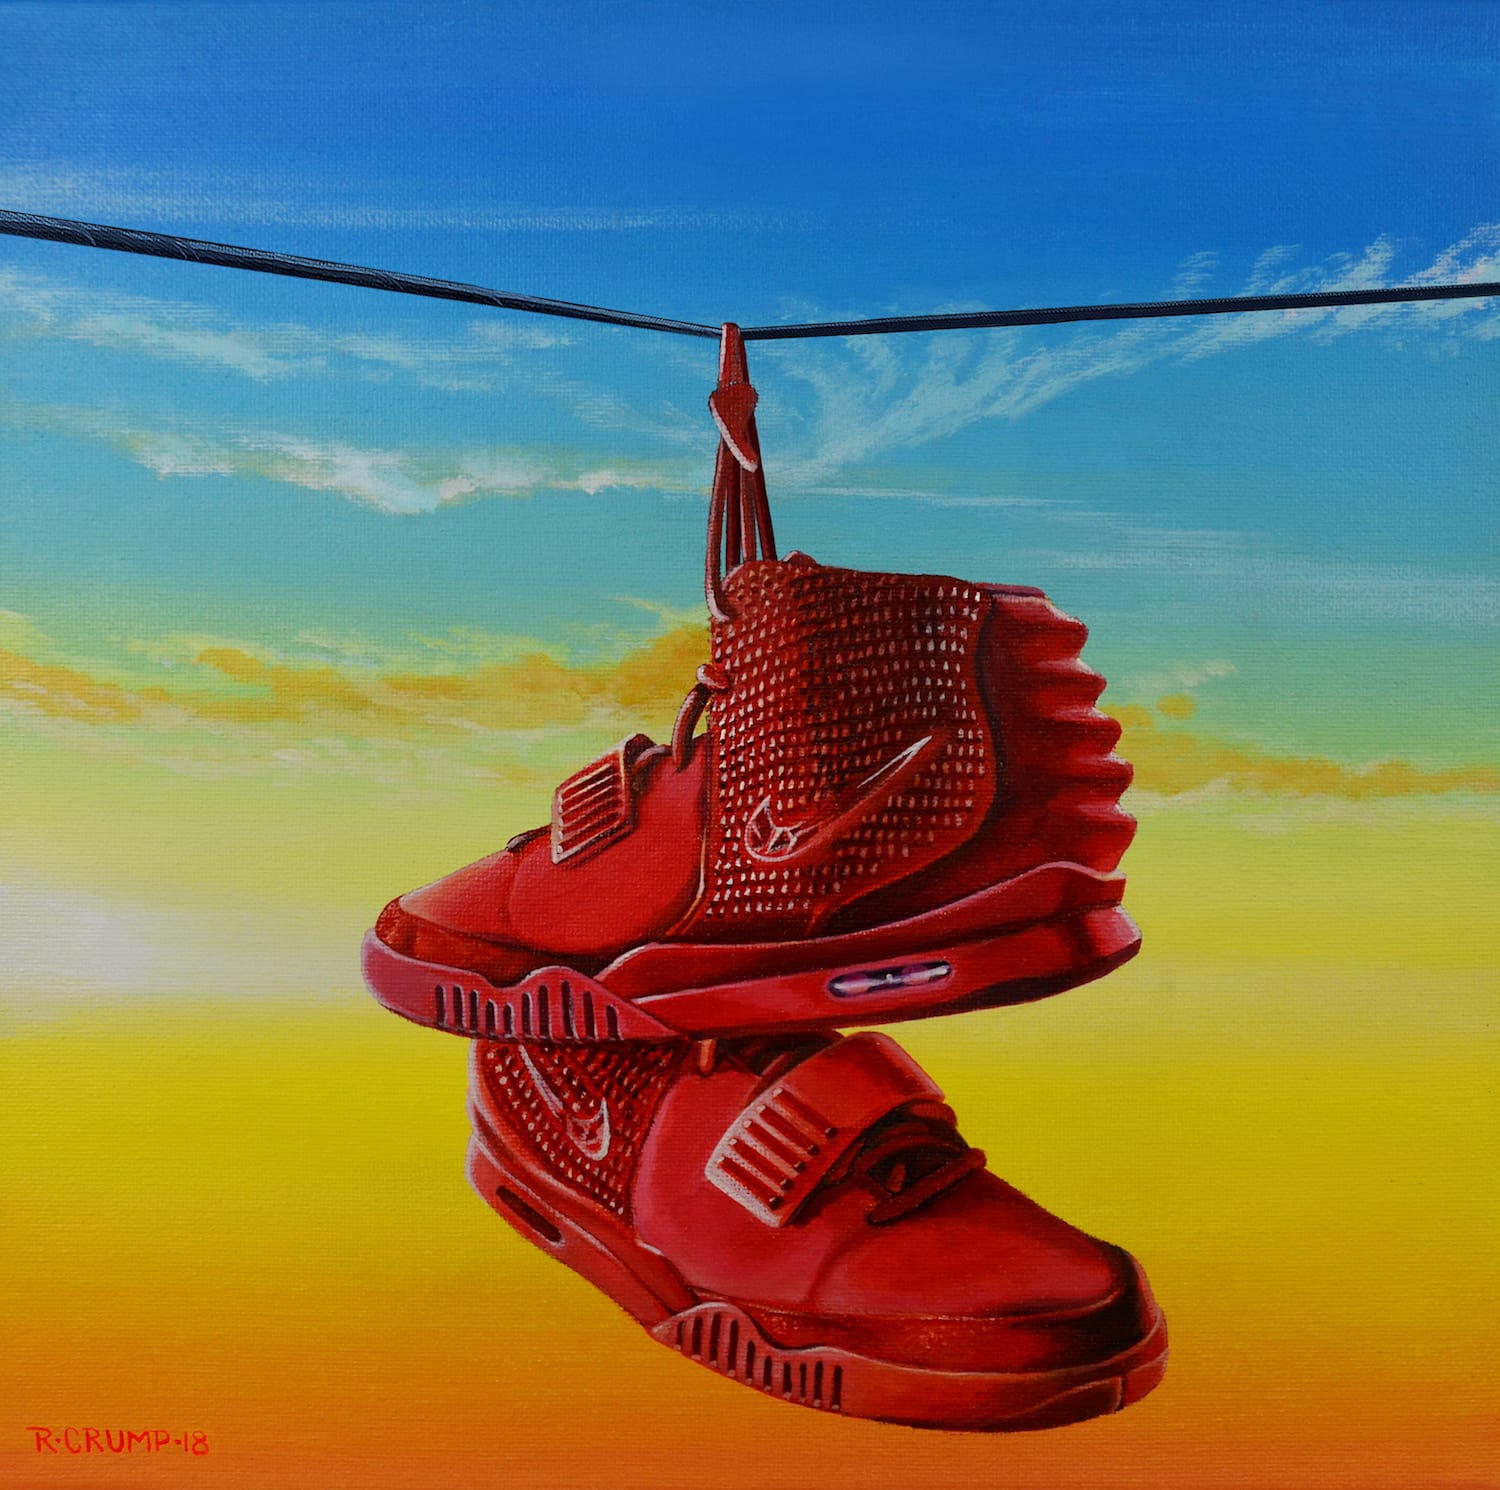 akrapheal  I will paint your favorite pair of shoes hanging by their laces  for $150 on www.fiverr.com